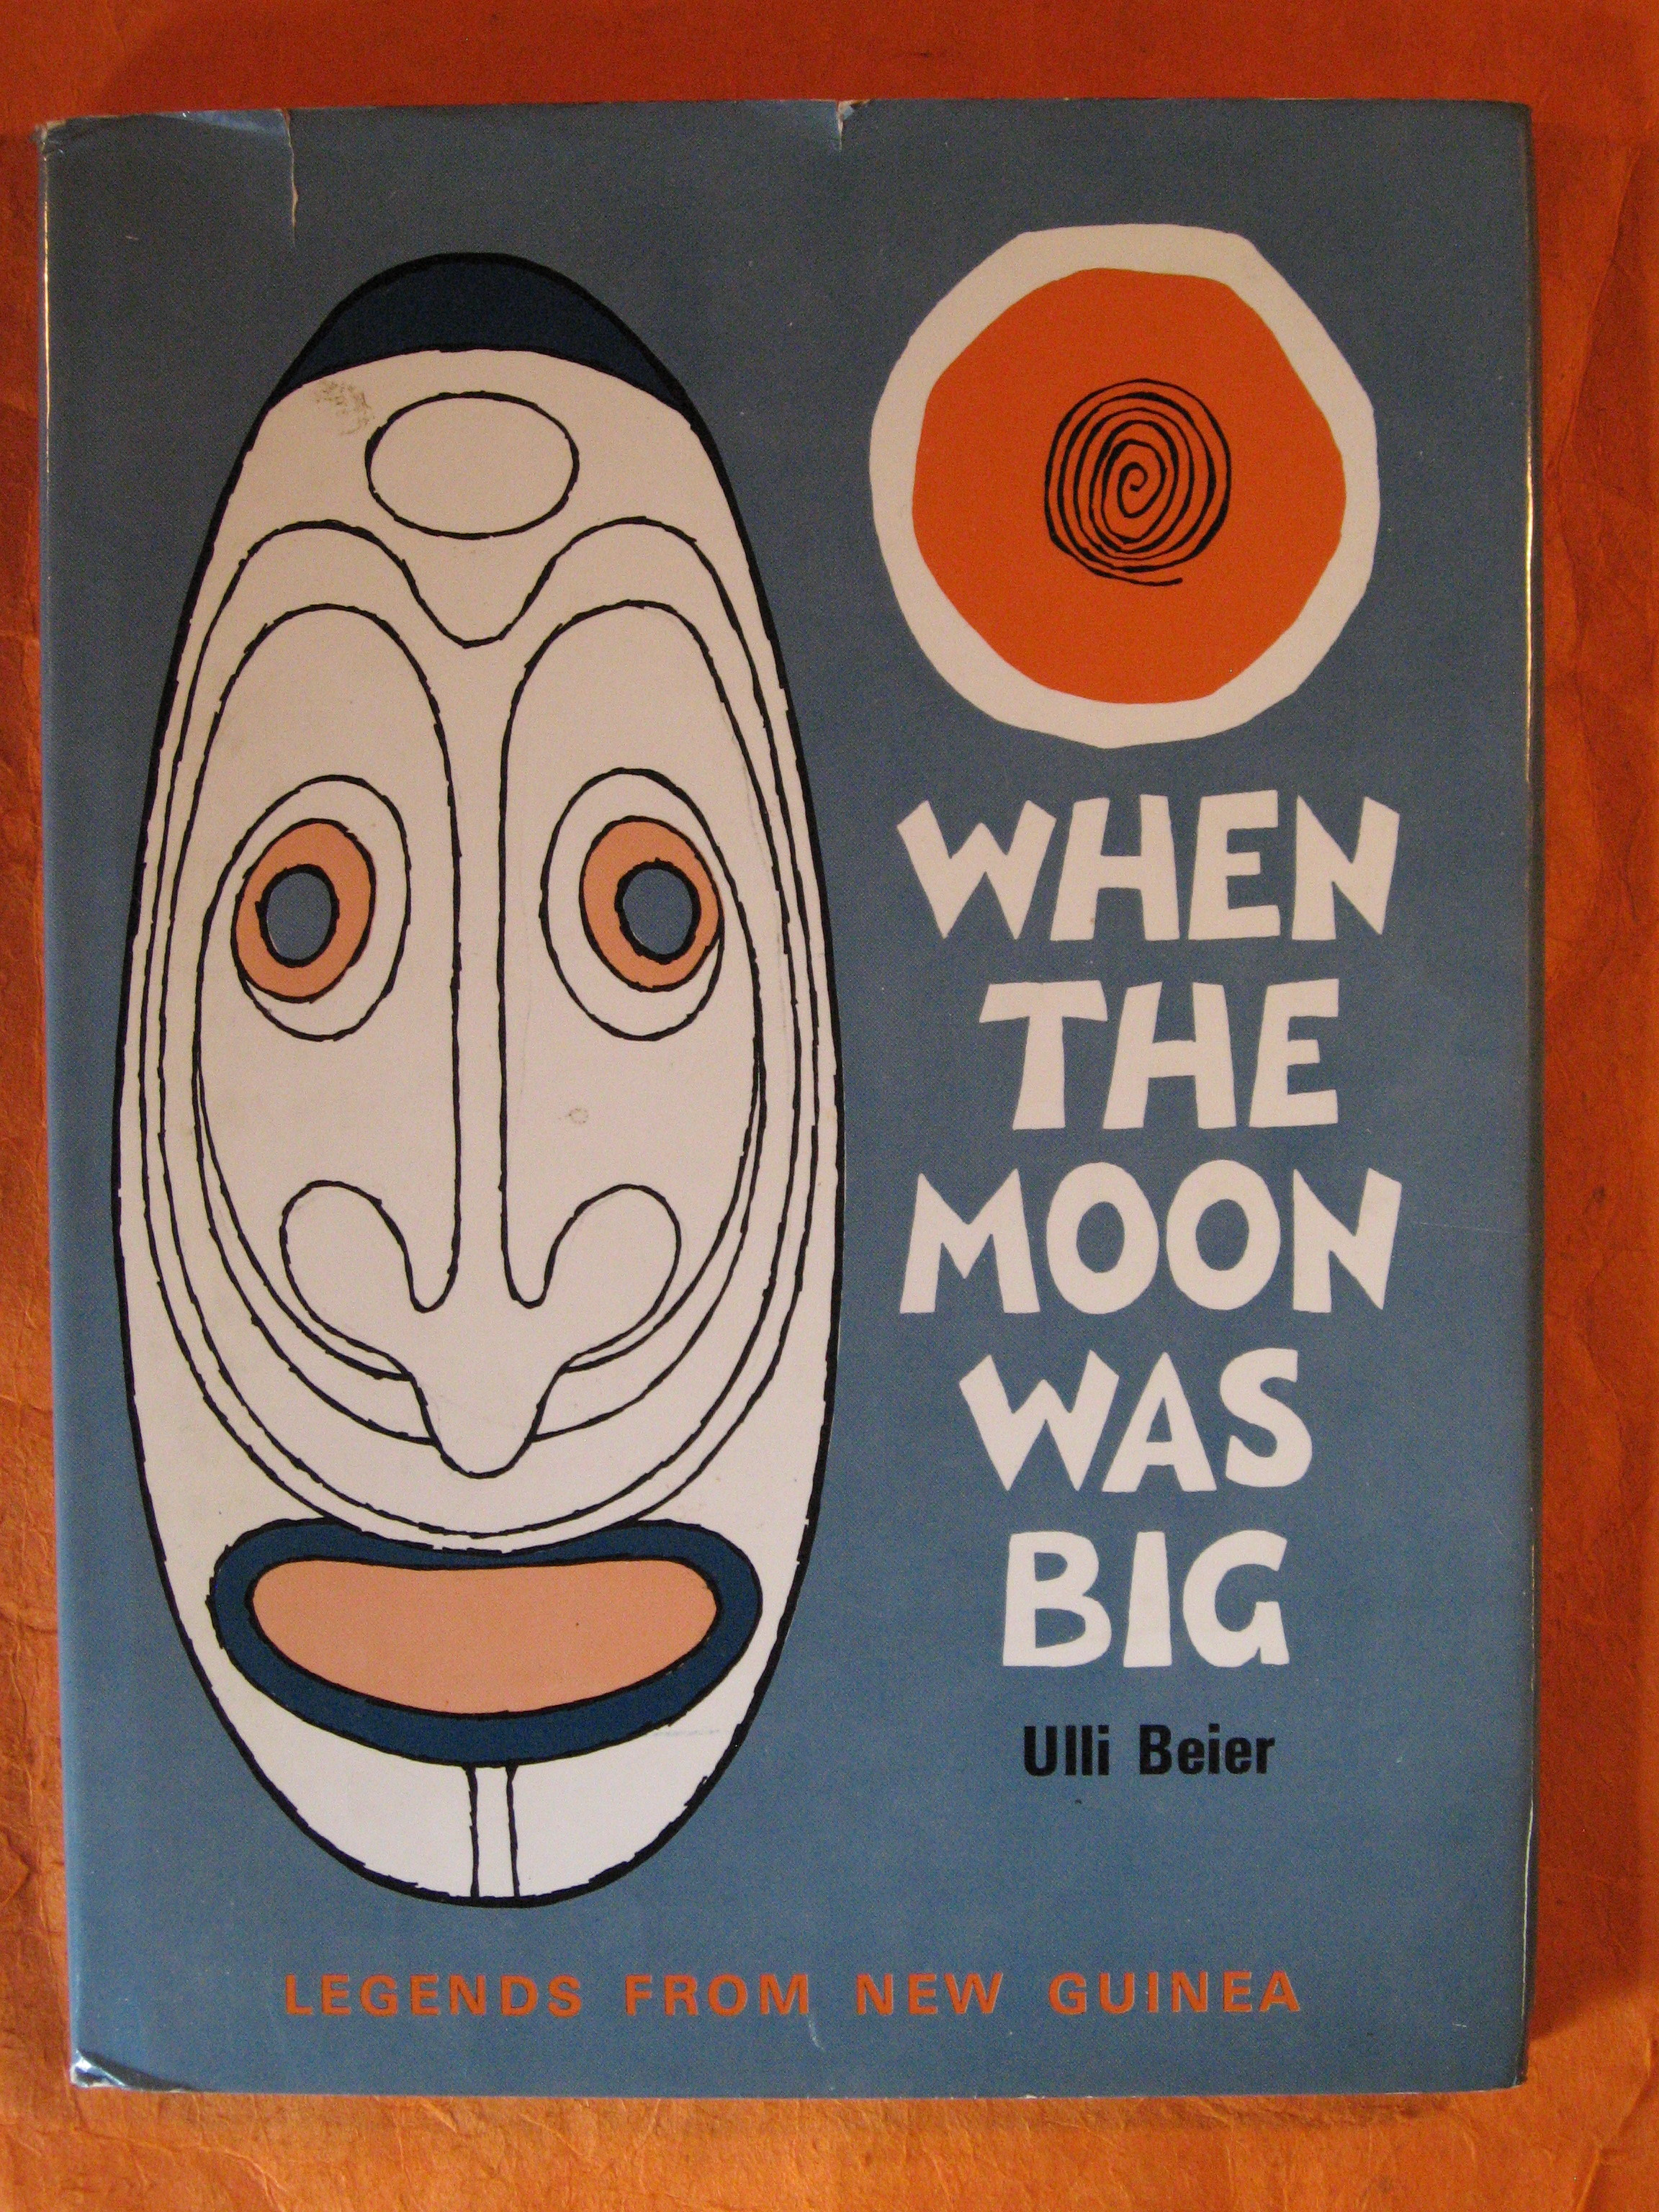 When the Moon was Big: Legends from New Guinea